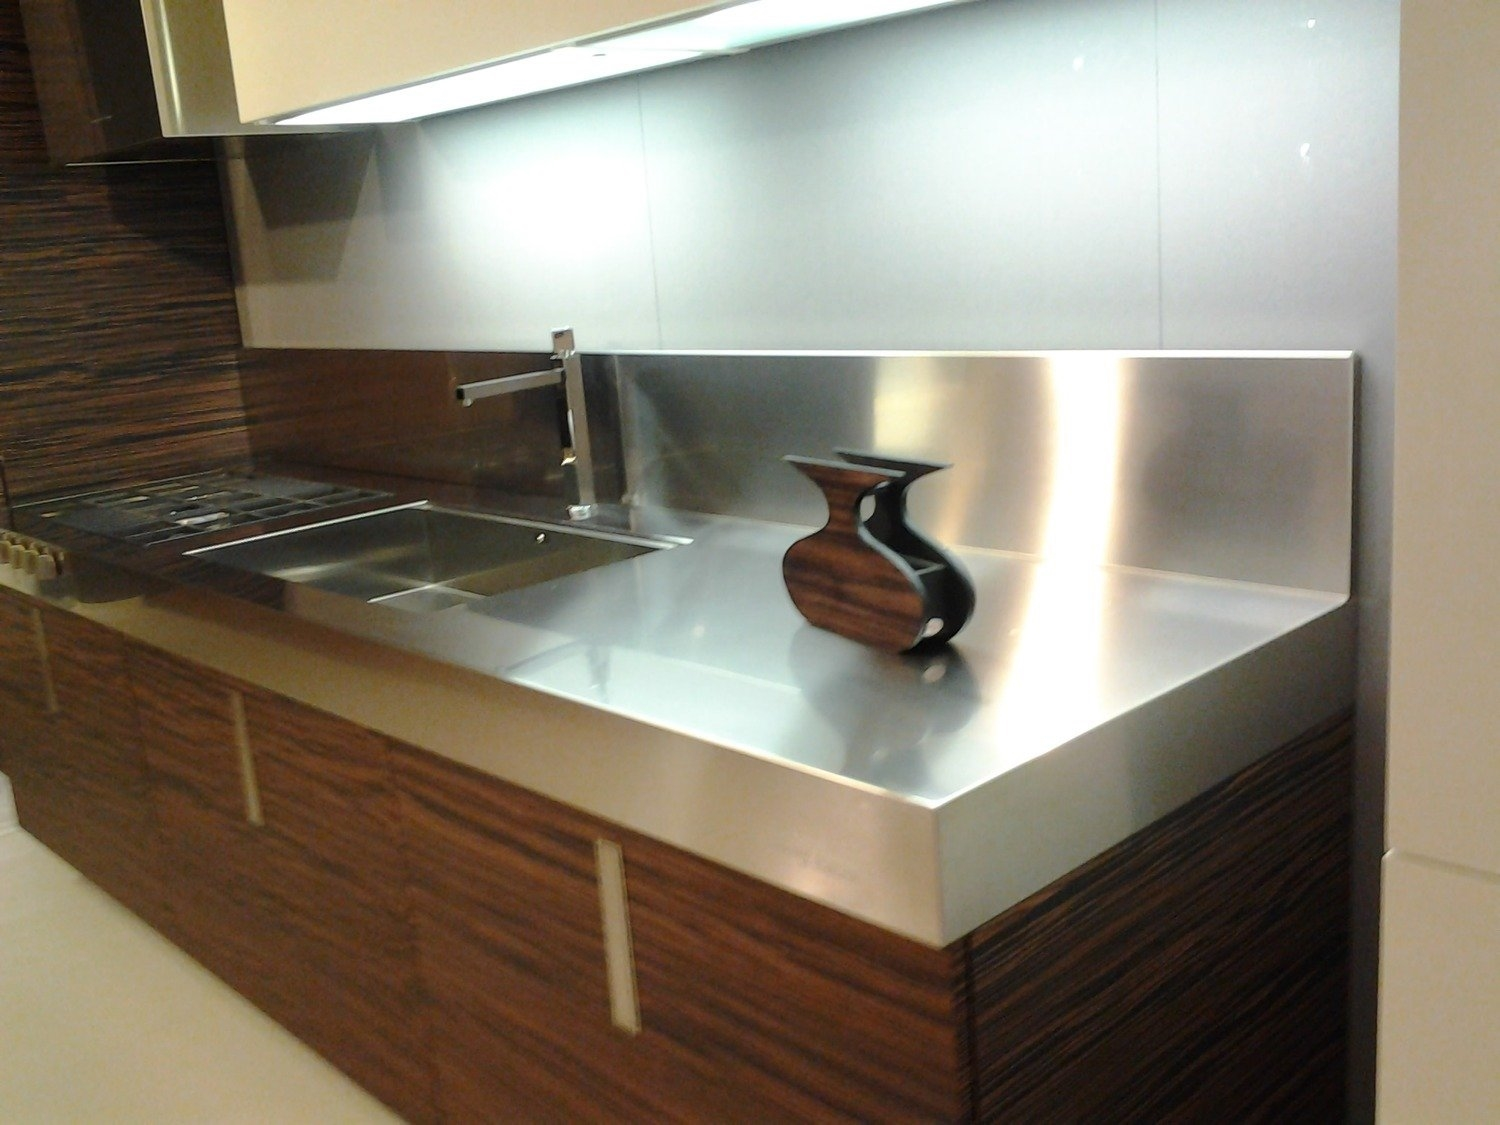 OUTLET CUCINA COMPOSIT modFREE